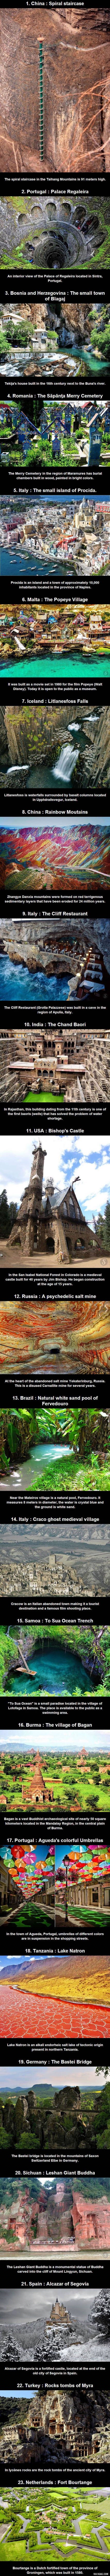 23 places to visit before dying